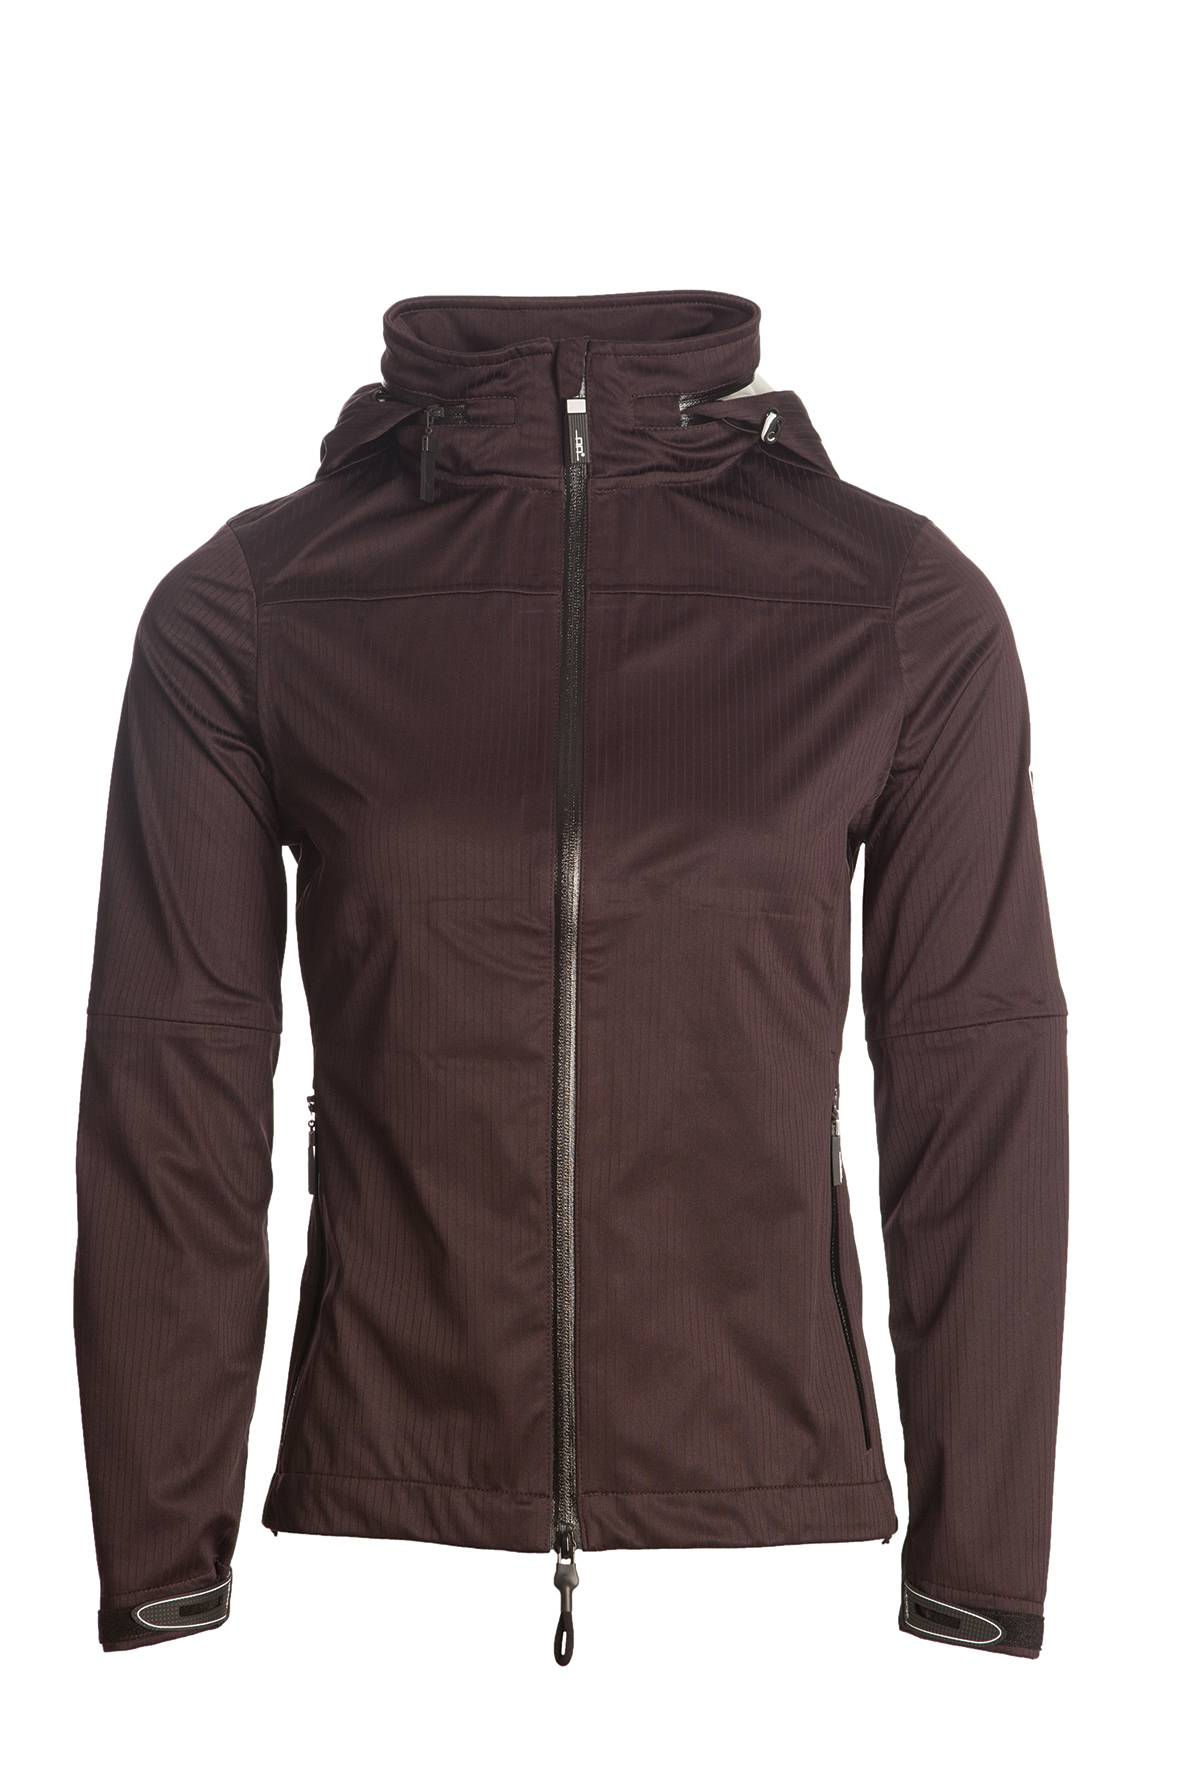 Alessandro Albanese Acqua Waterproof Jacket Ladies